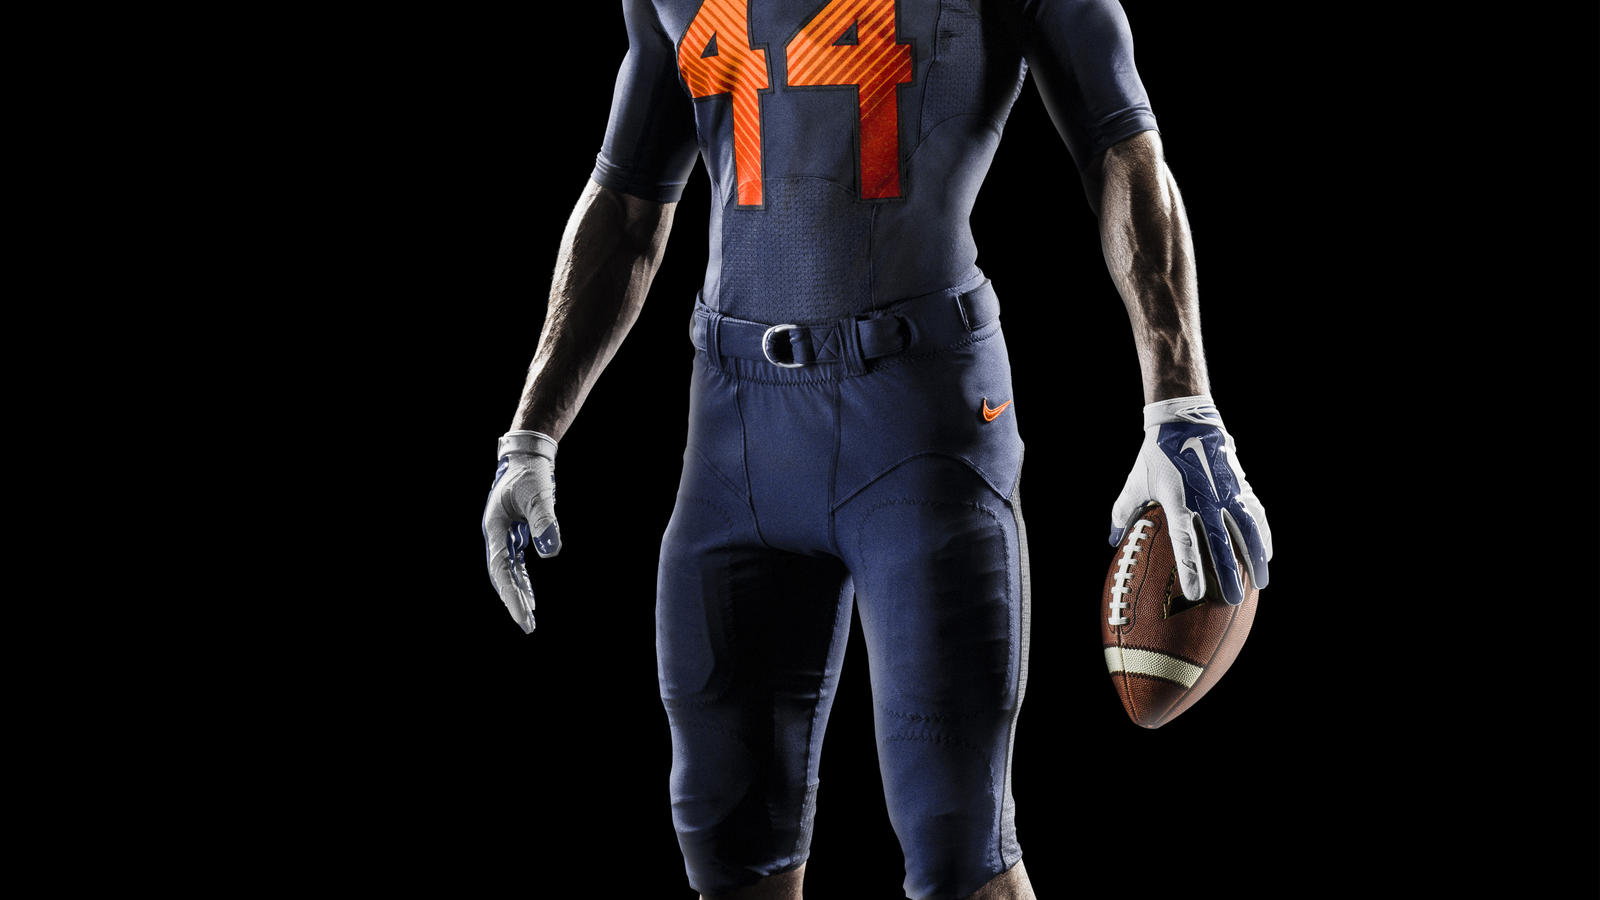 su14_at_ncaa_syrcs_comp_front_navy_jersey